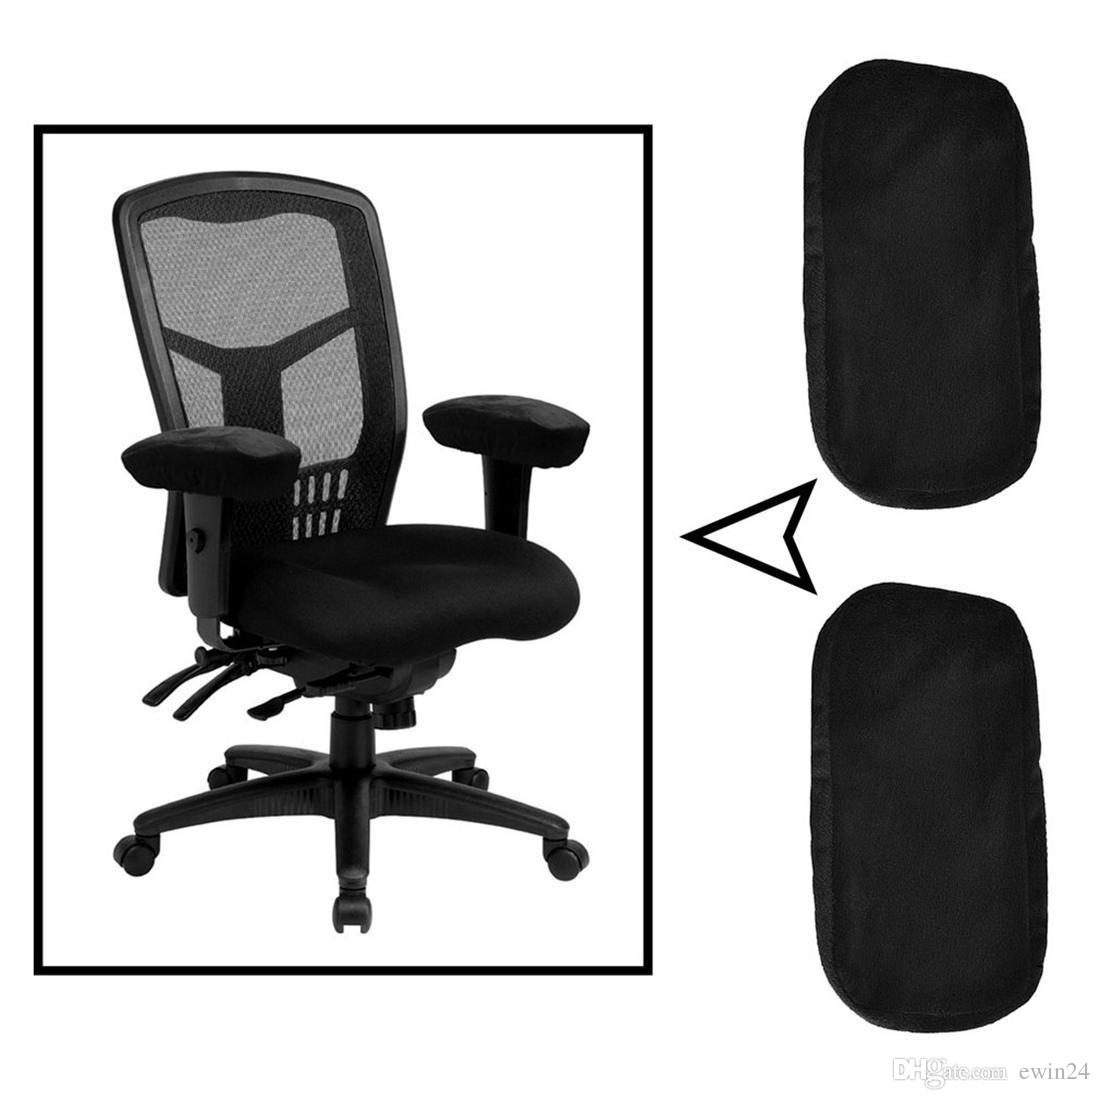 Ergonomic Memory Foam Office Chair Armrest Pads Comfy Gaming Chair Arm Rest Covers for Elbows and Forearms Pressure Relief(Set of 2)